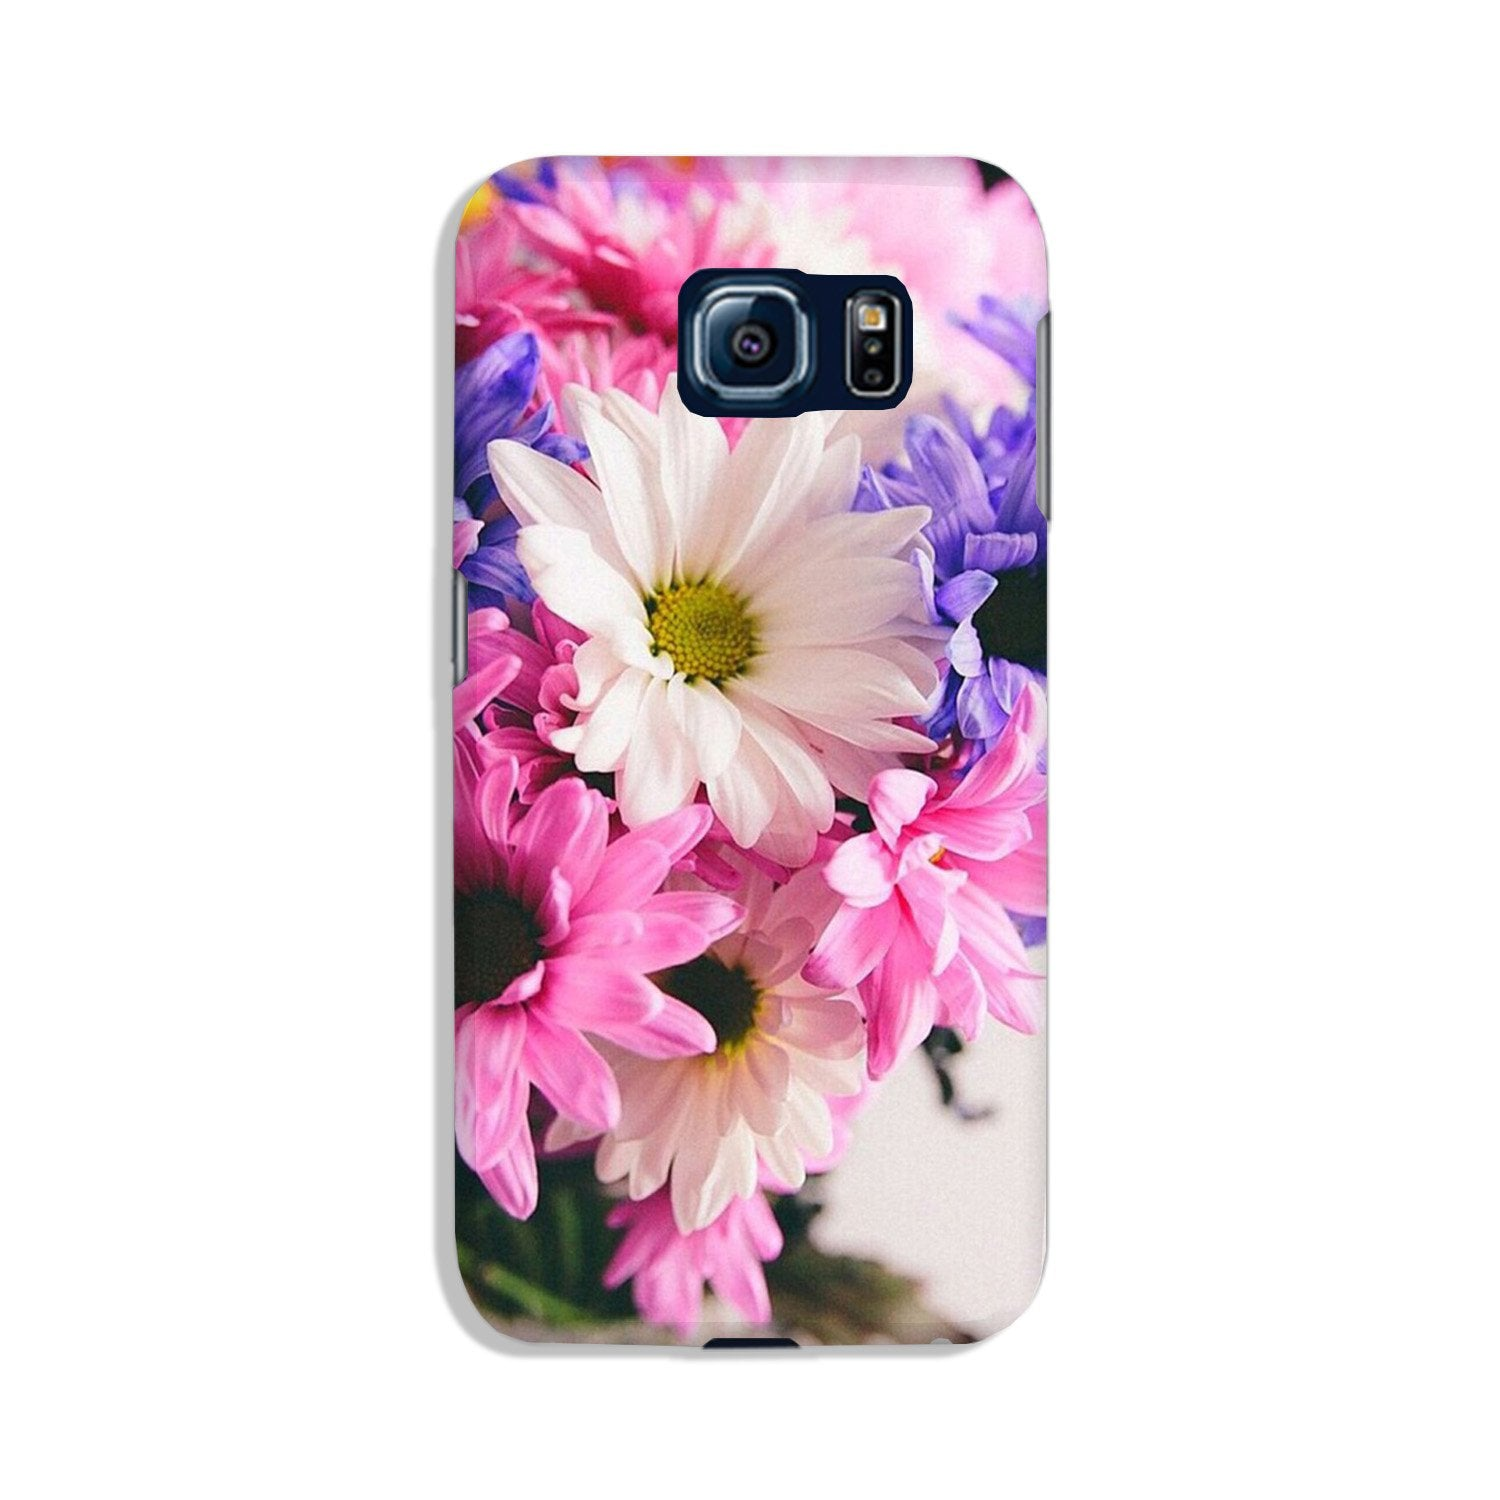 Coloful Daisy Case for Galaxy S6